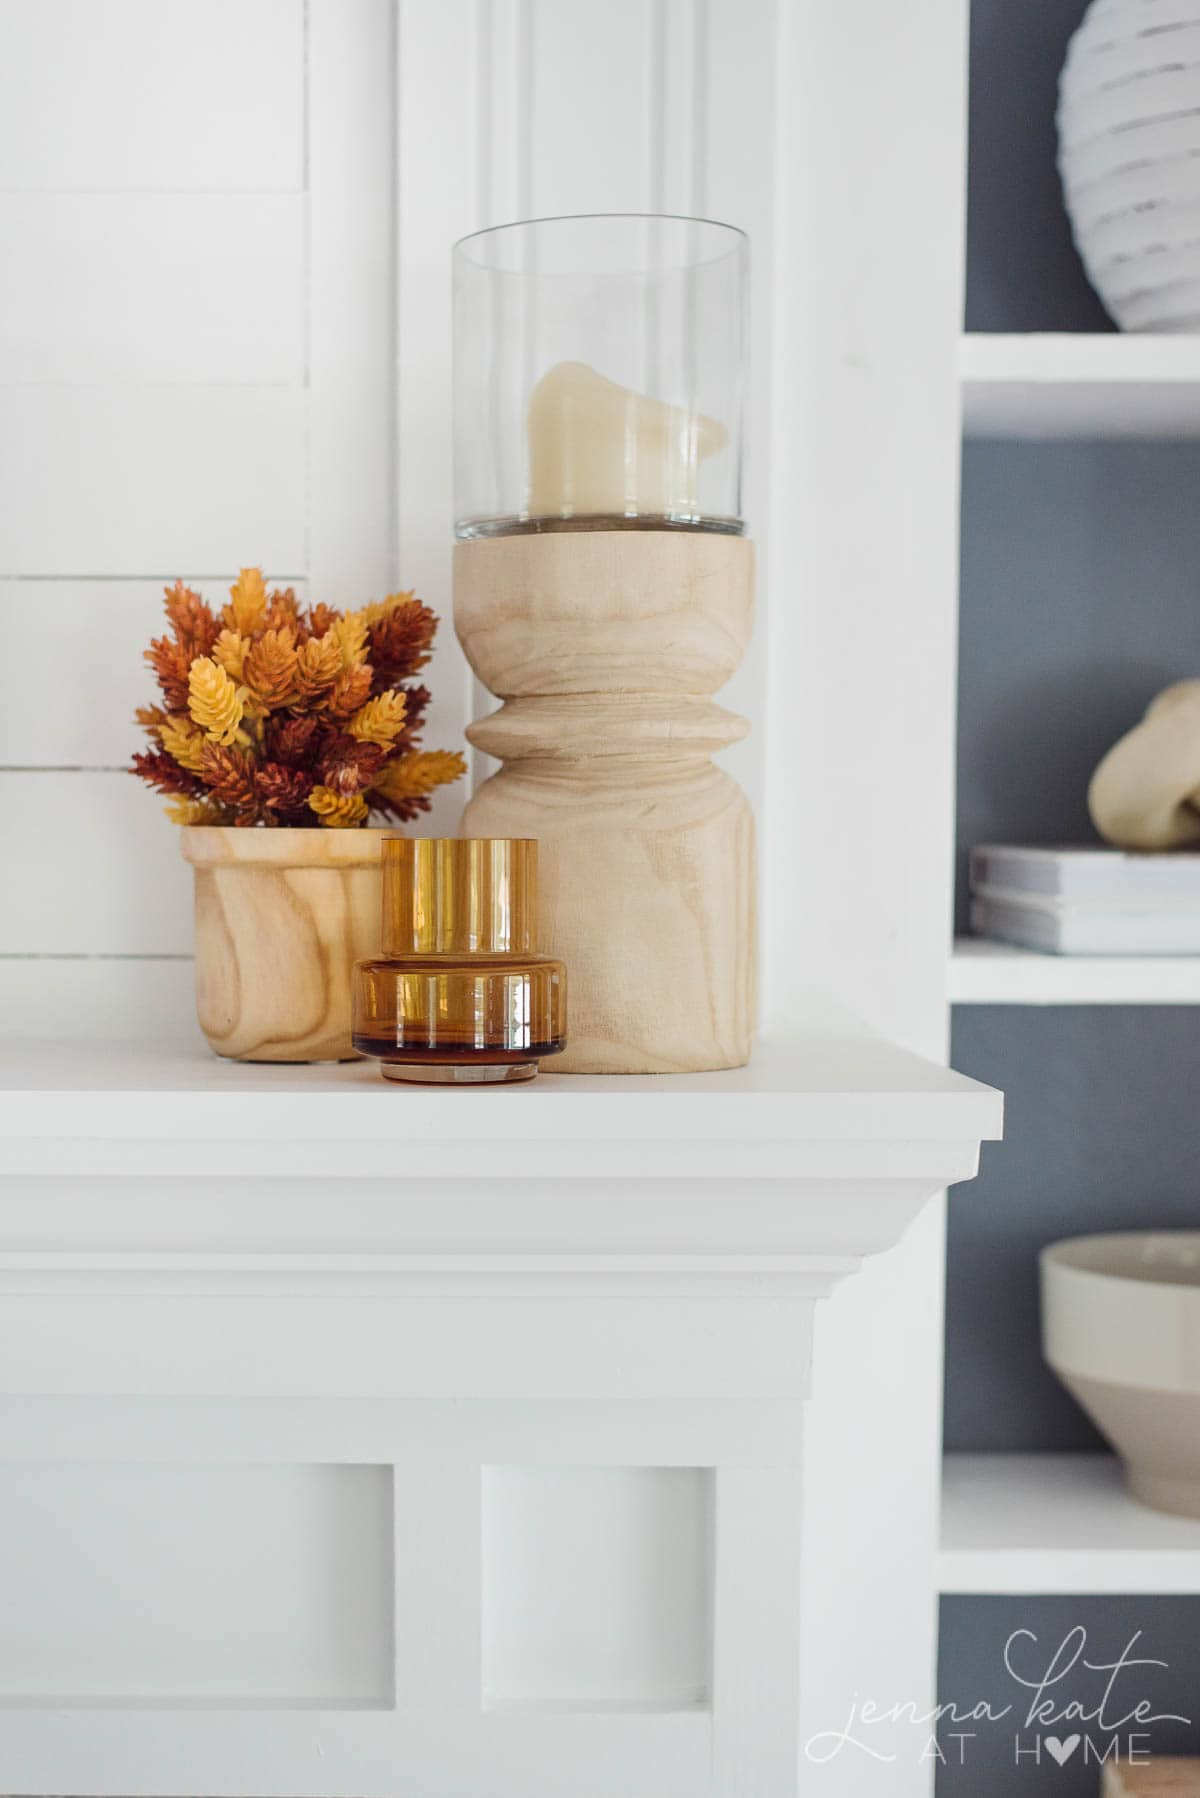 wooden candle holder, faux fall flowers and amber glass on a mantel